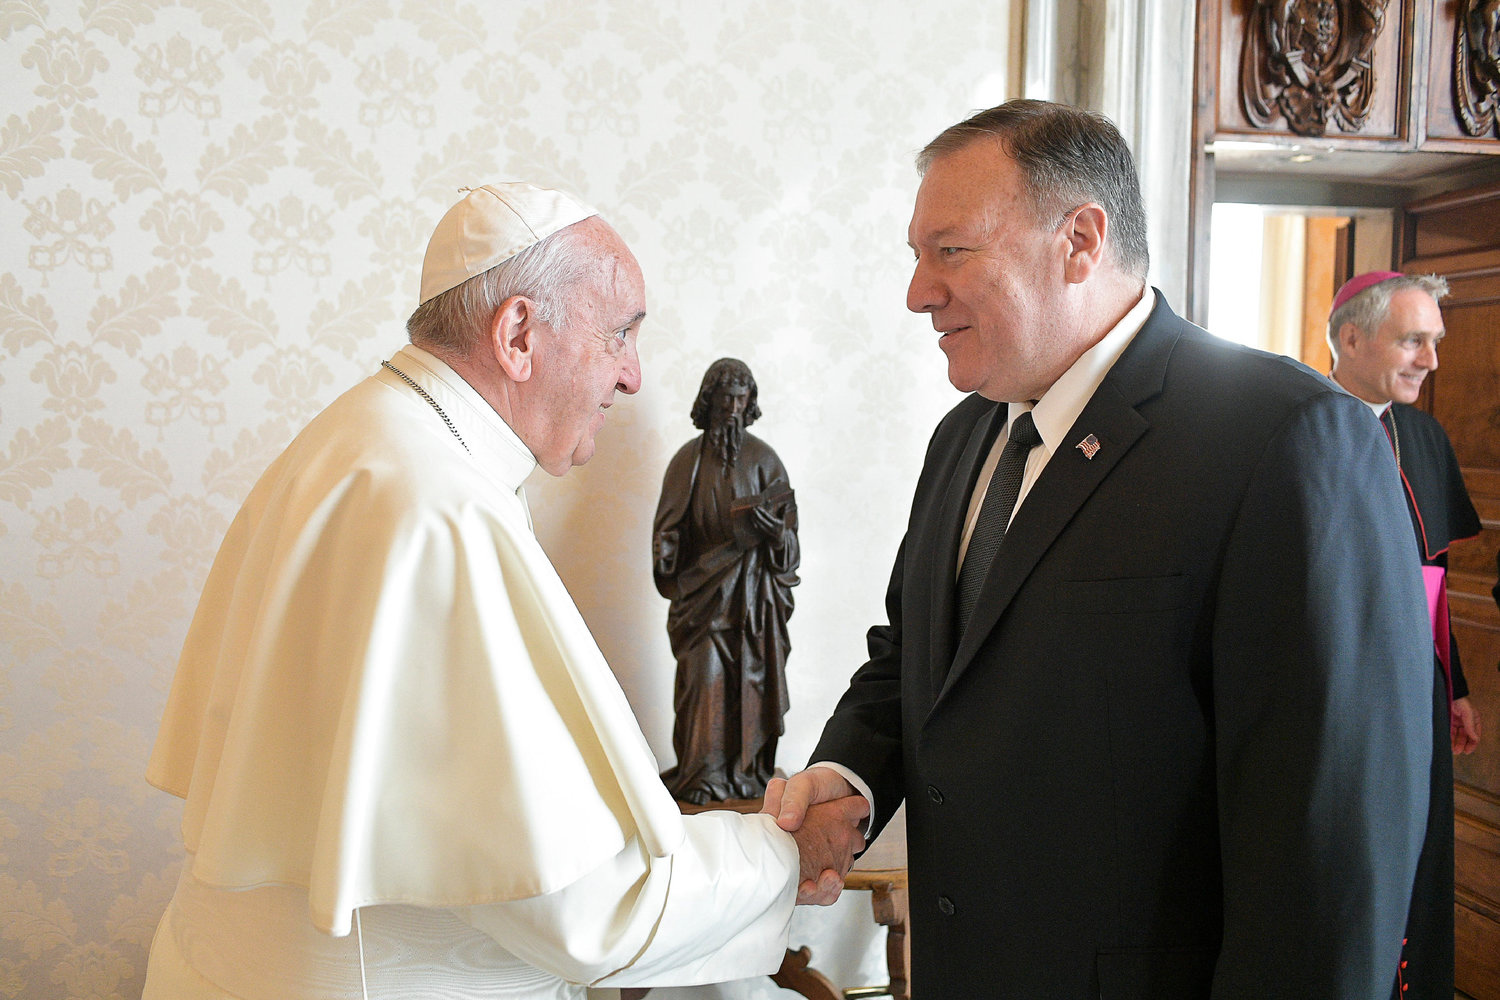 Pope Francis meets U.S. Secretary of State Mike Pompeo during a private audience at the Vatican Oct. 3, 2019.